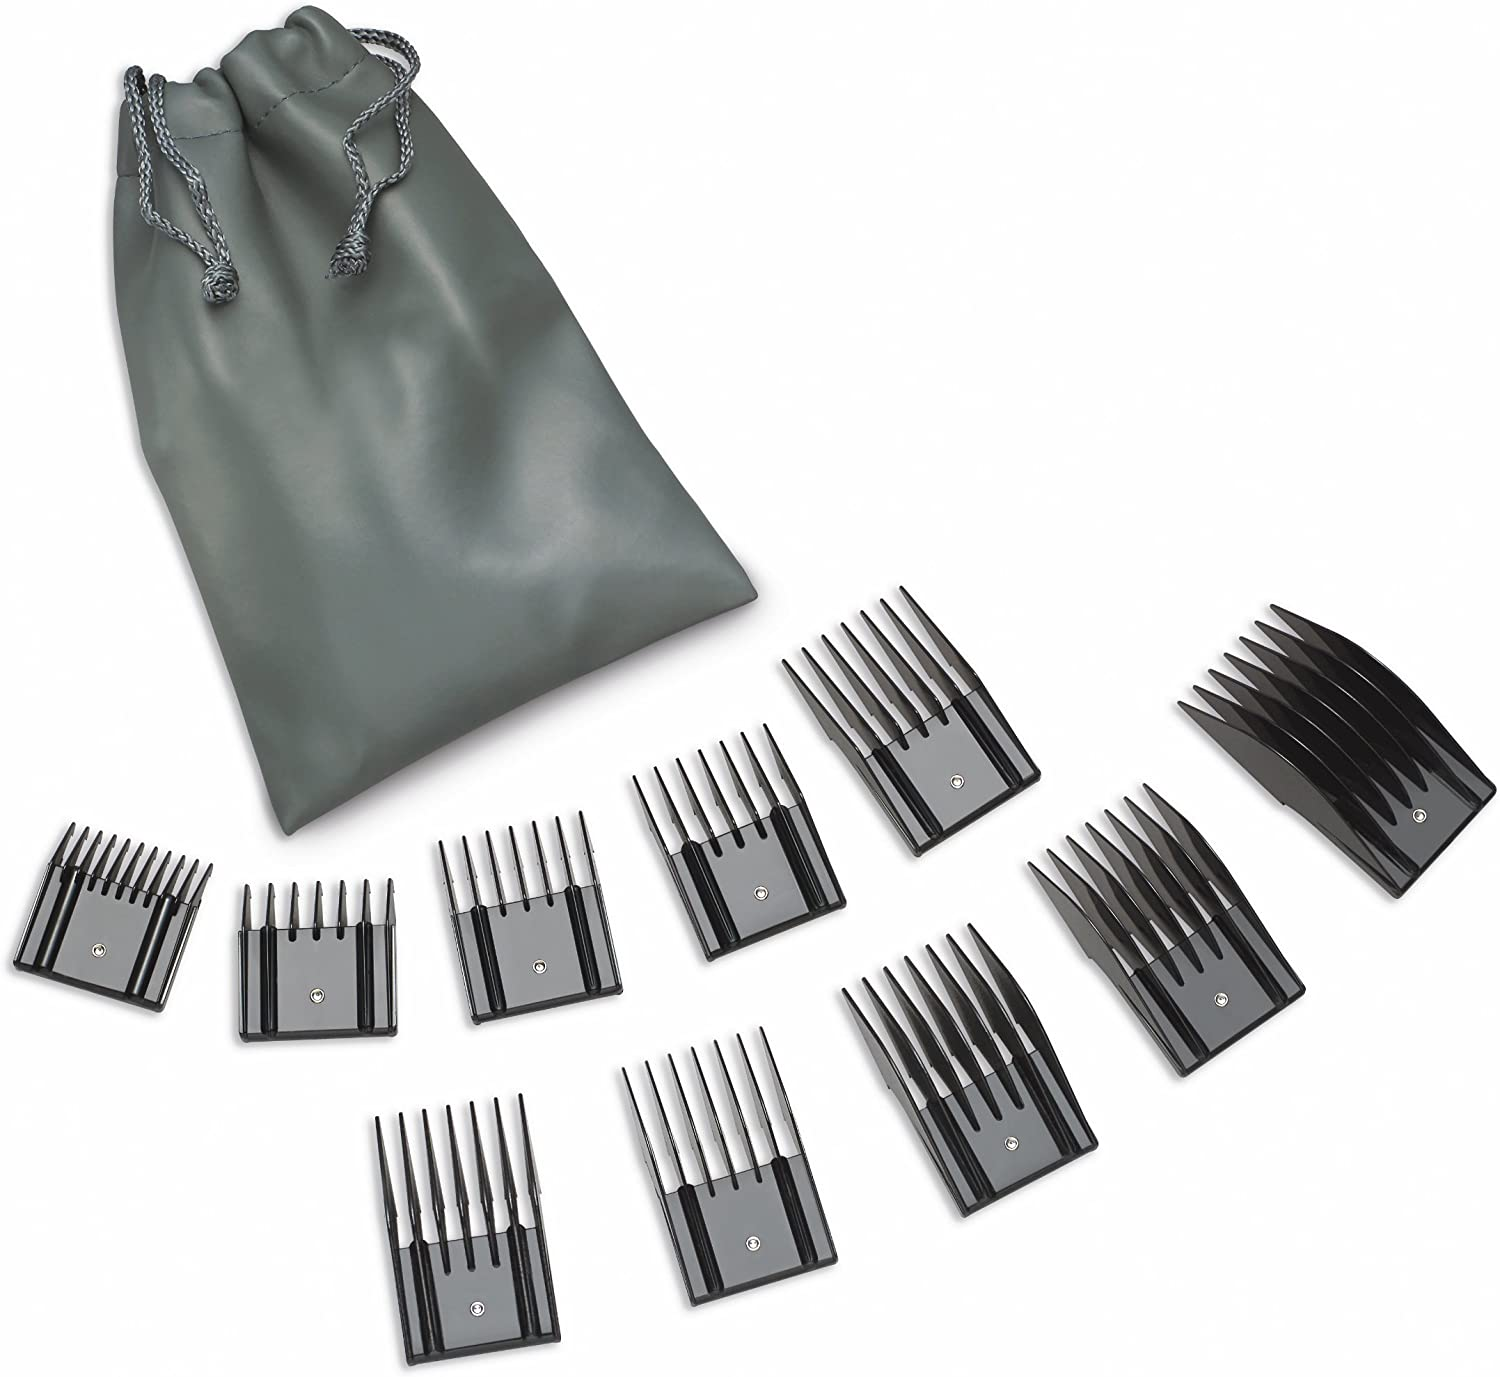 Oster 078900600000 Professional Care 10Piece Universal Comb Set